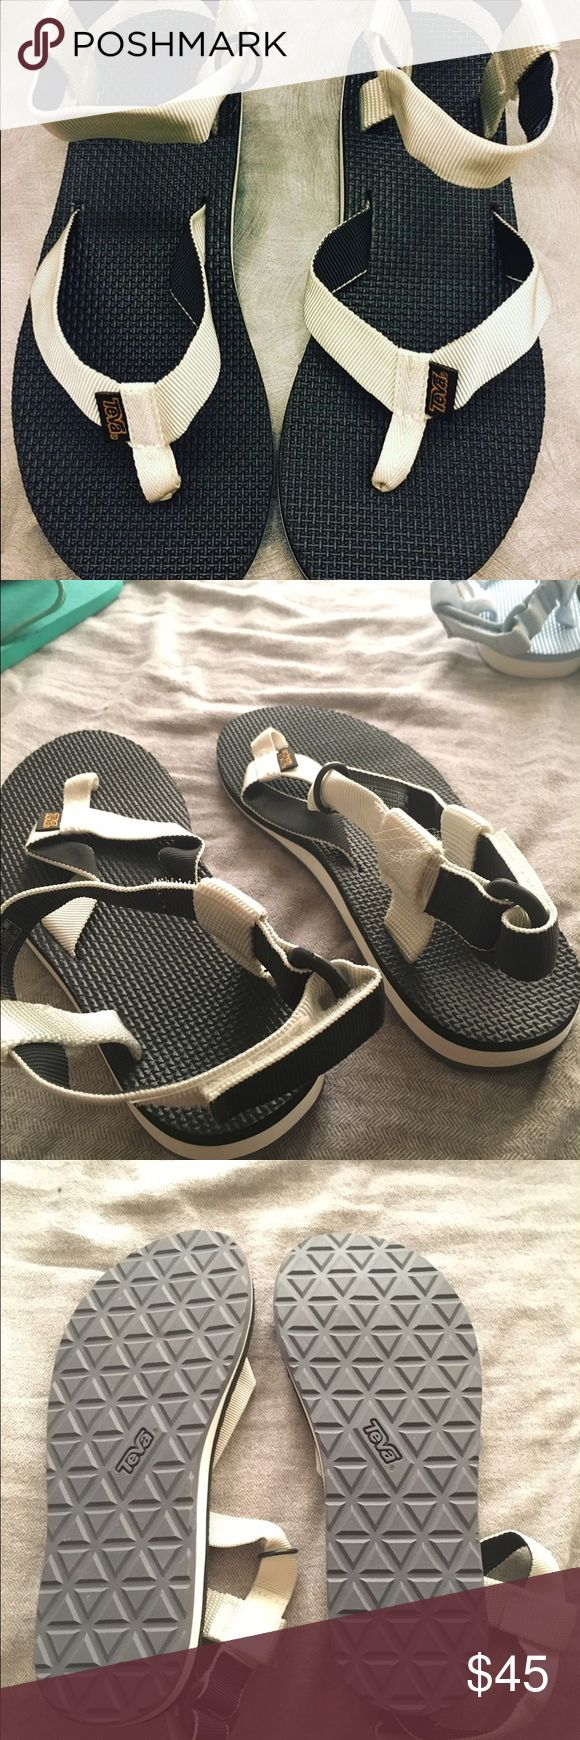 TEVA Original Sandal Brand new never been worn, doesn't come with original box. And are perfect for outdoor use and super stylish 🤗🌊🌎🚲 inside tag marked red by the store indicating final sale. The Velcro snagged a bit of the strap, goes unnoticeable (see picture) Teva Shoes Sandals